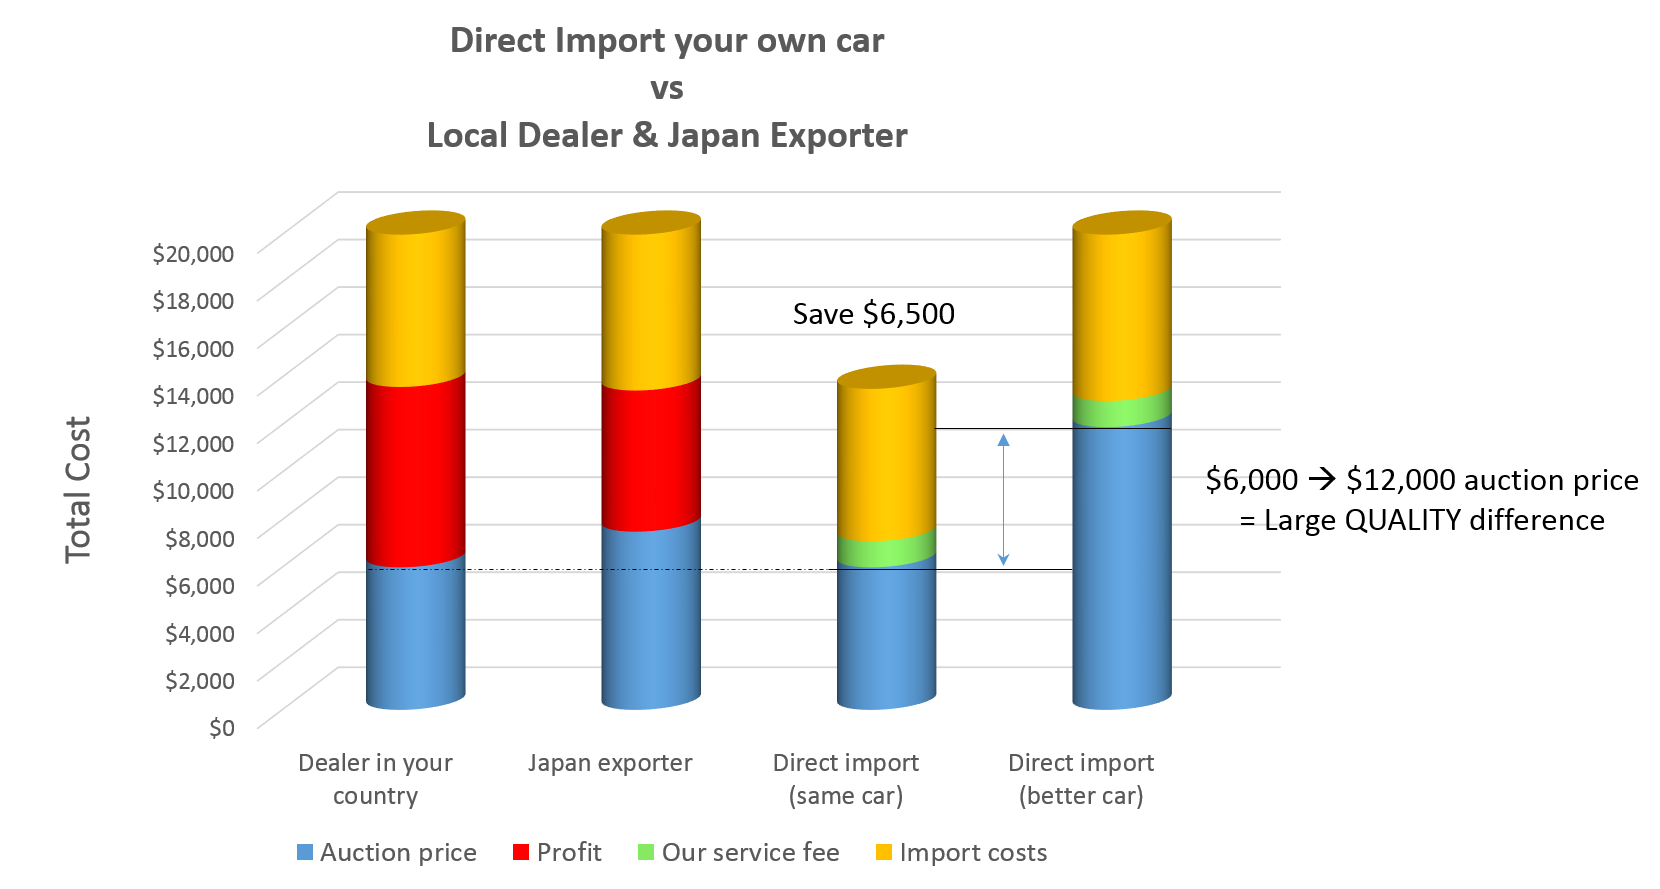 Import direct cost savings graph